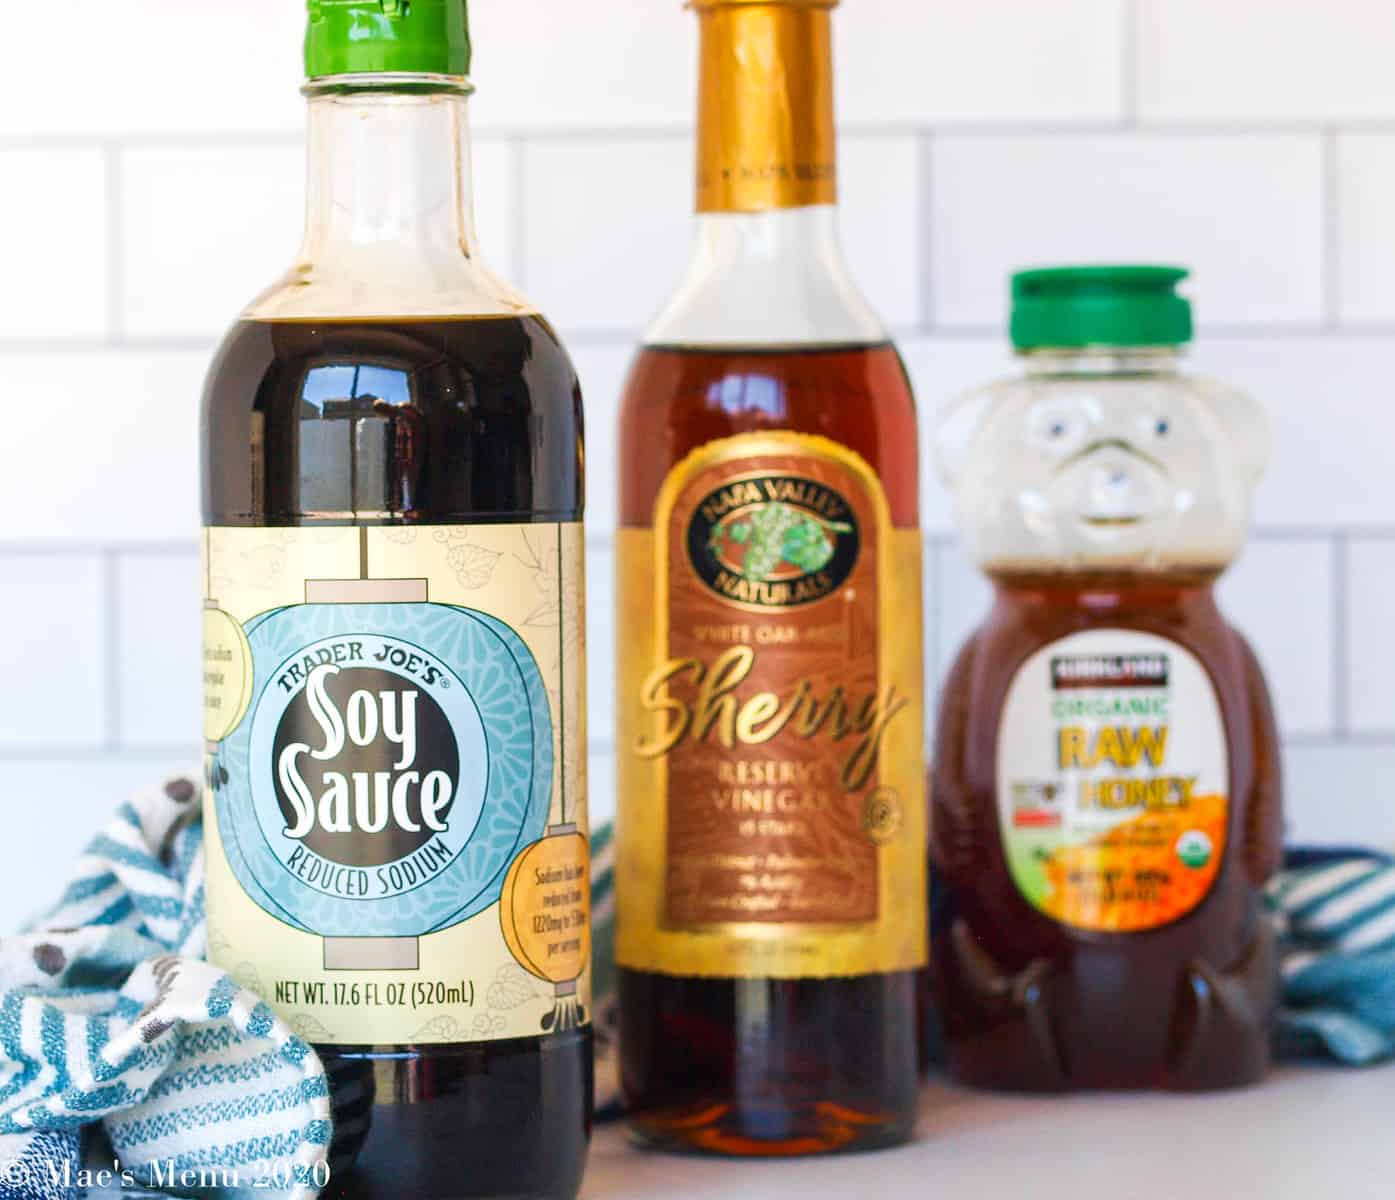 A bottle each of soy sauce, sherry vinegar, and honey